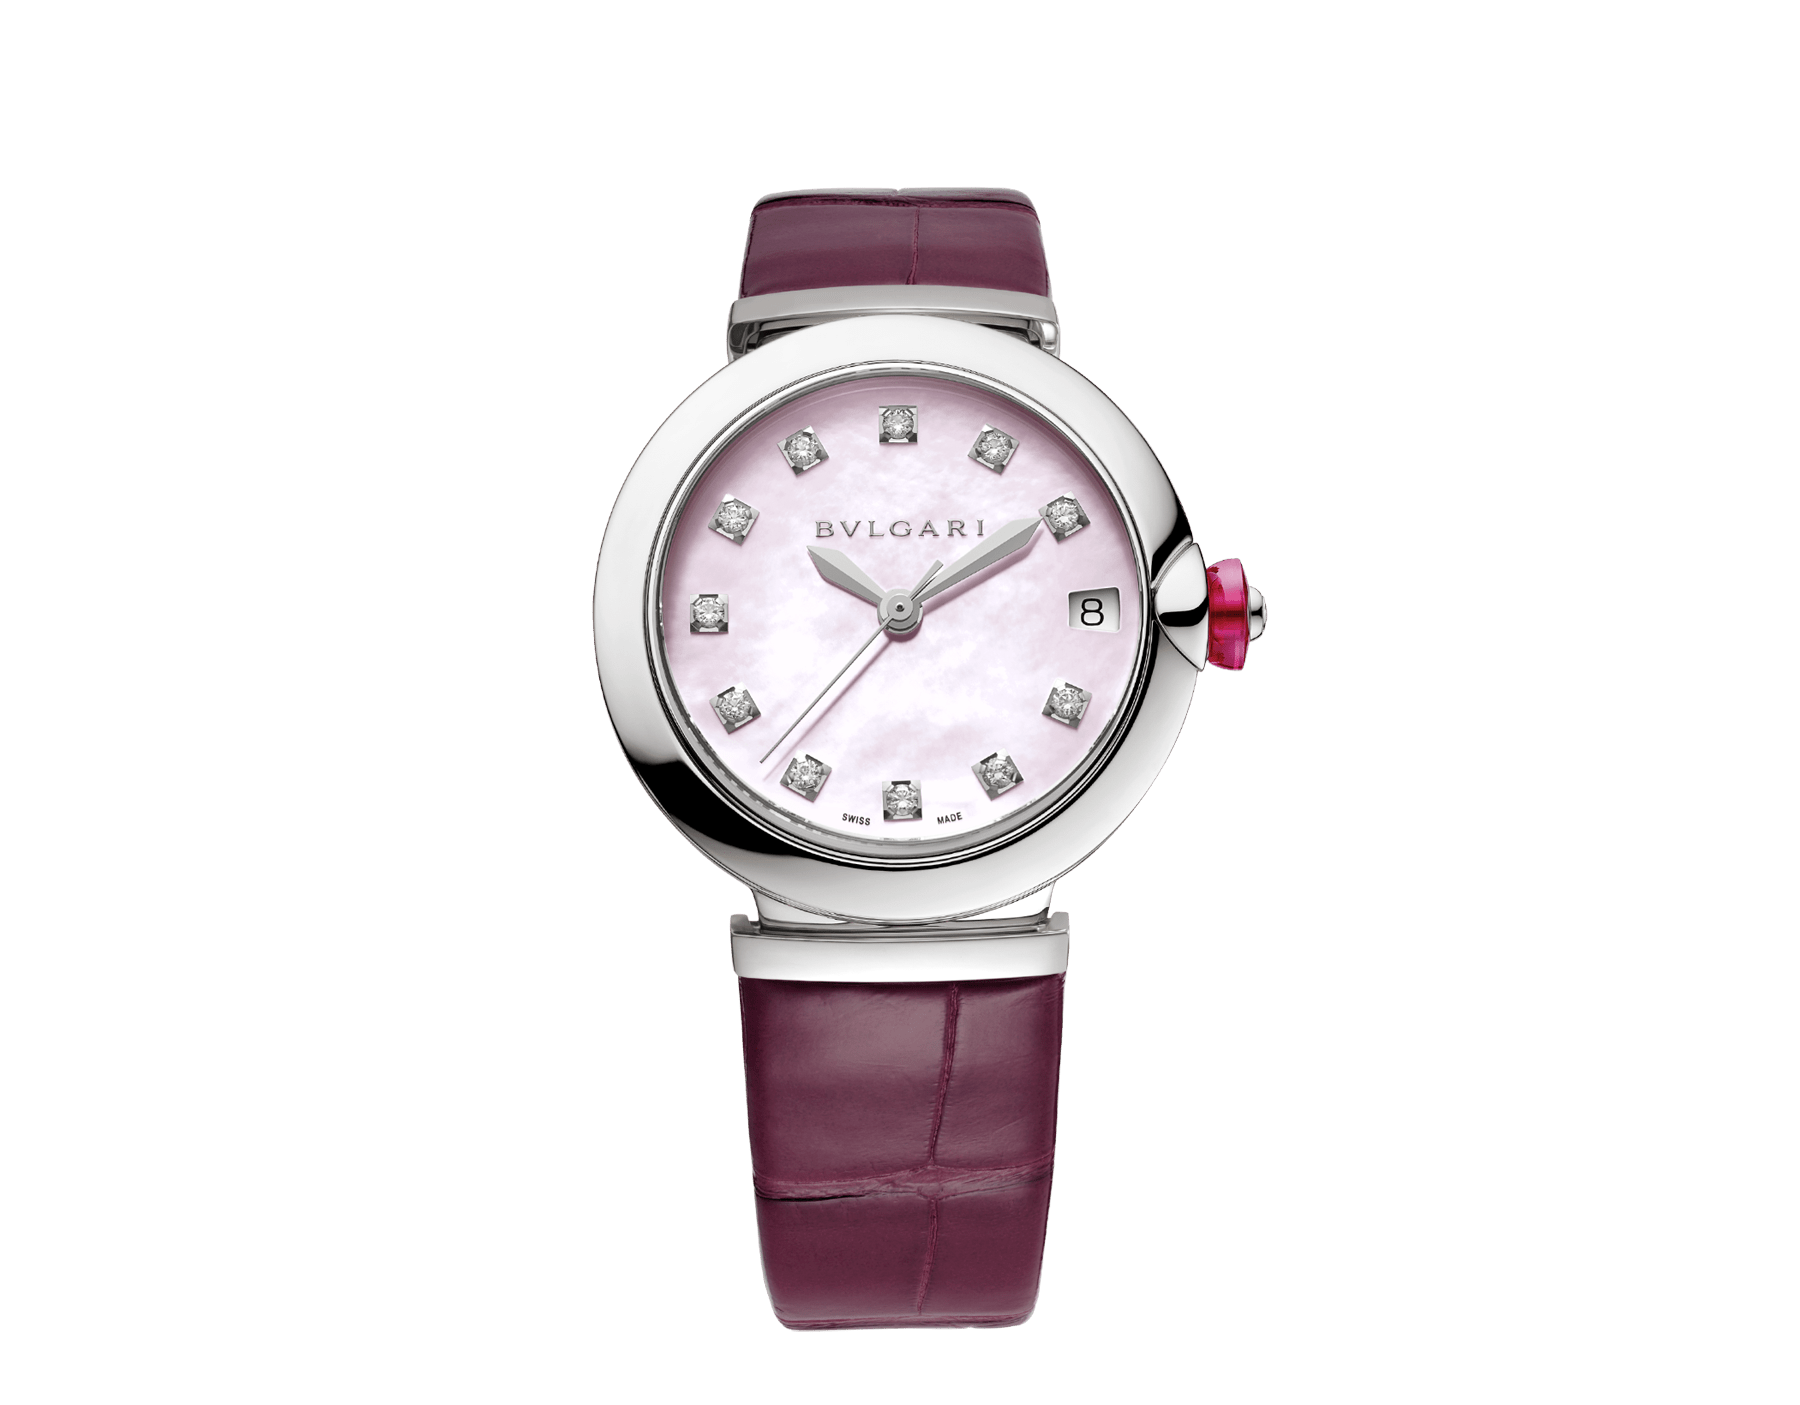 LVCEA watch with stainless steel case, pink mother-of-pearl dial, diamond indexes and burgundy alligator bracelet. 102609 image 1